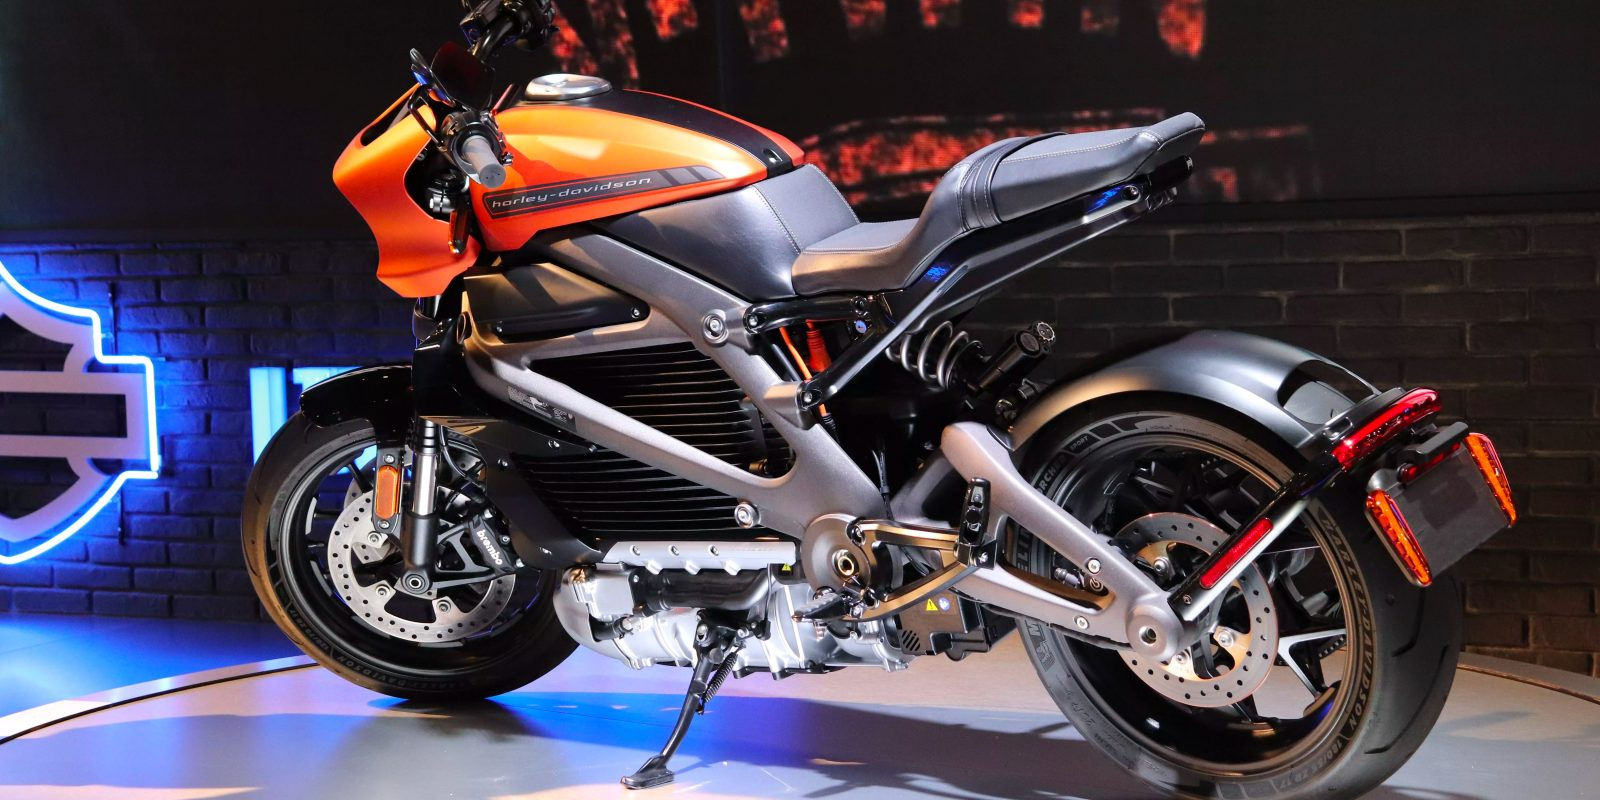 Harley Davidson Unveils Livewire Specs And Prices Shows Off 3 New Urban Electric Motorbikes